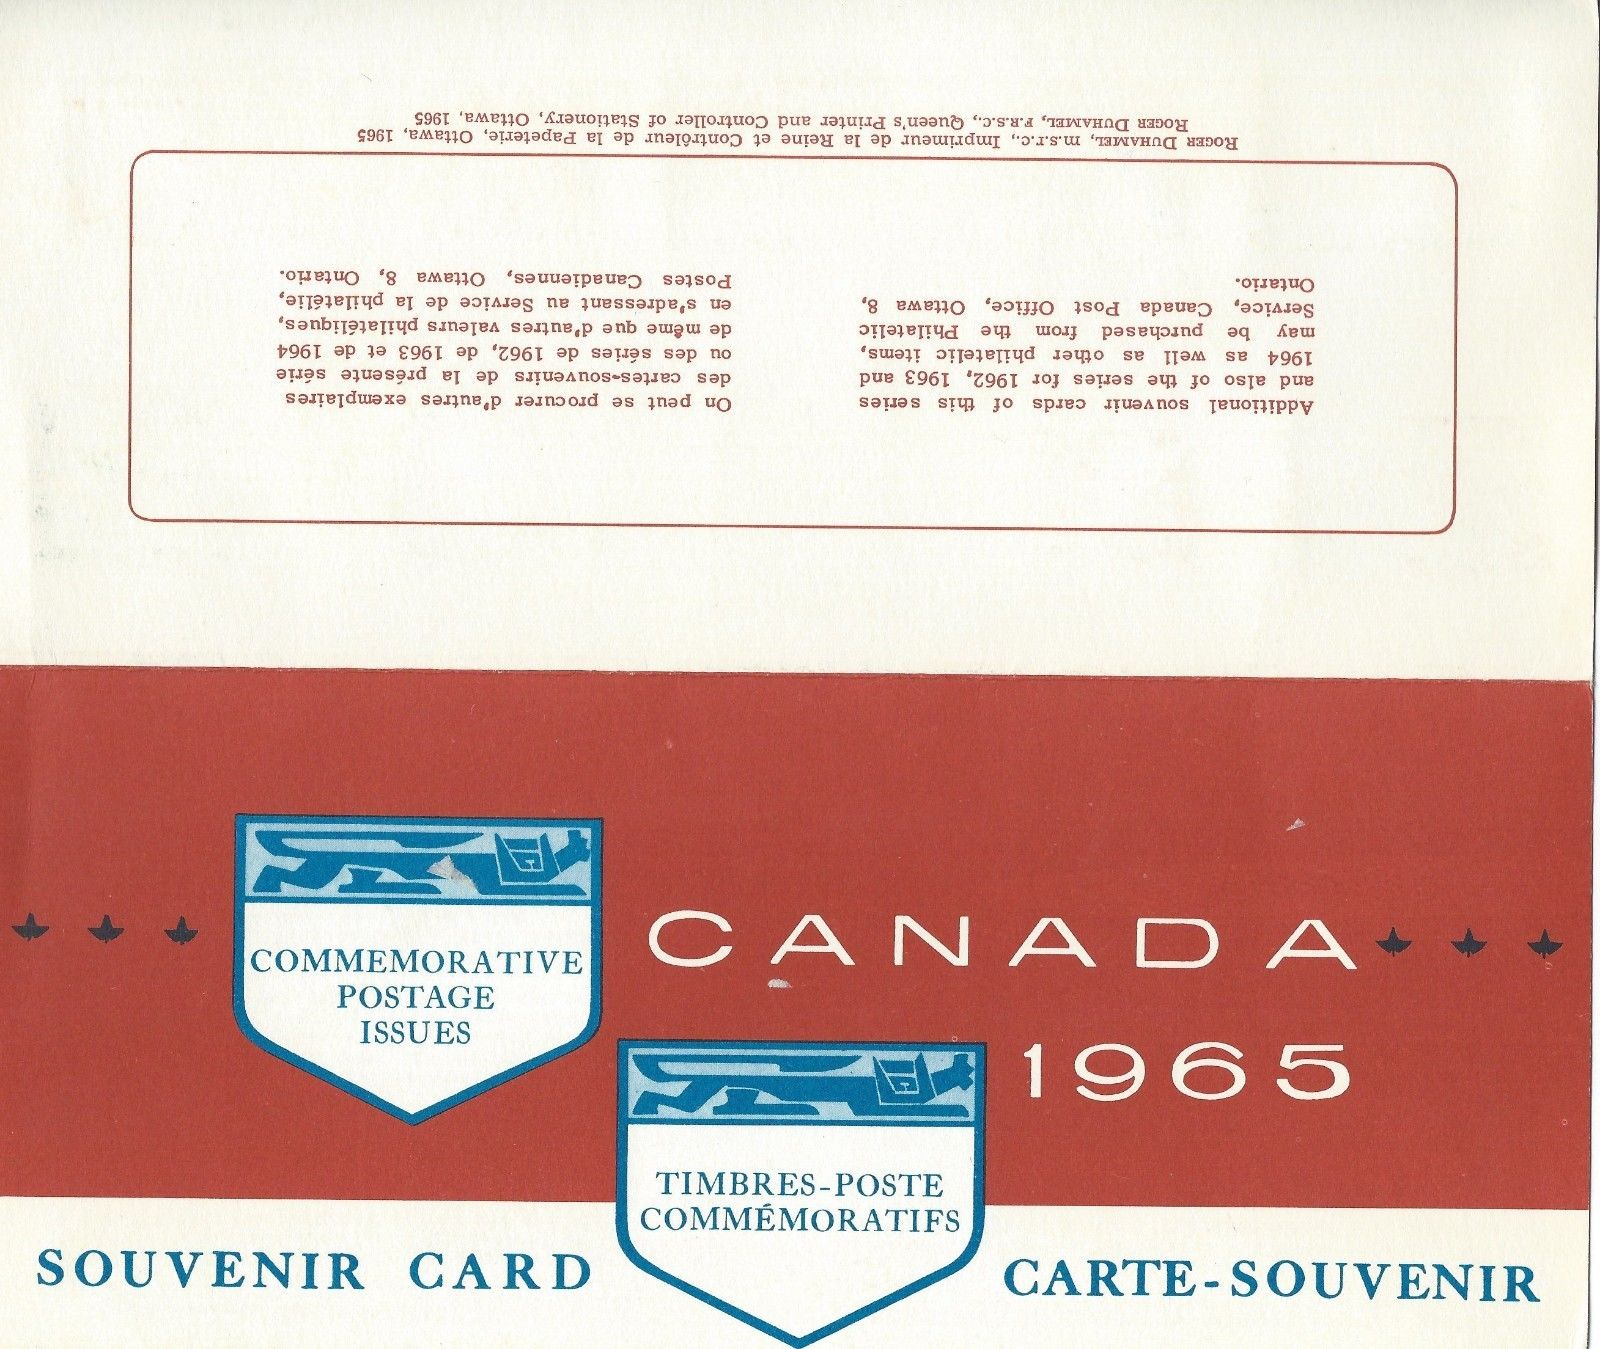 Canada Souvenir Card 7 Commemorative Postage Issues 1965 Hipstamp